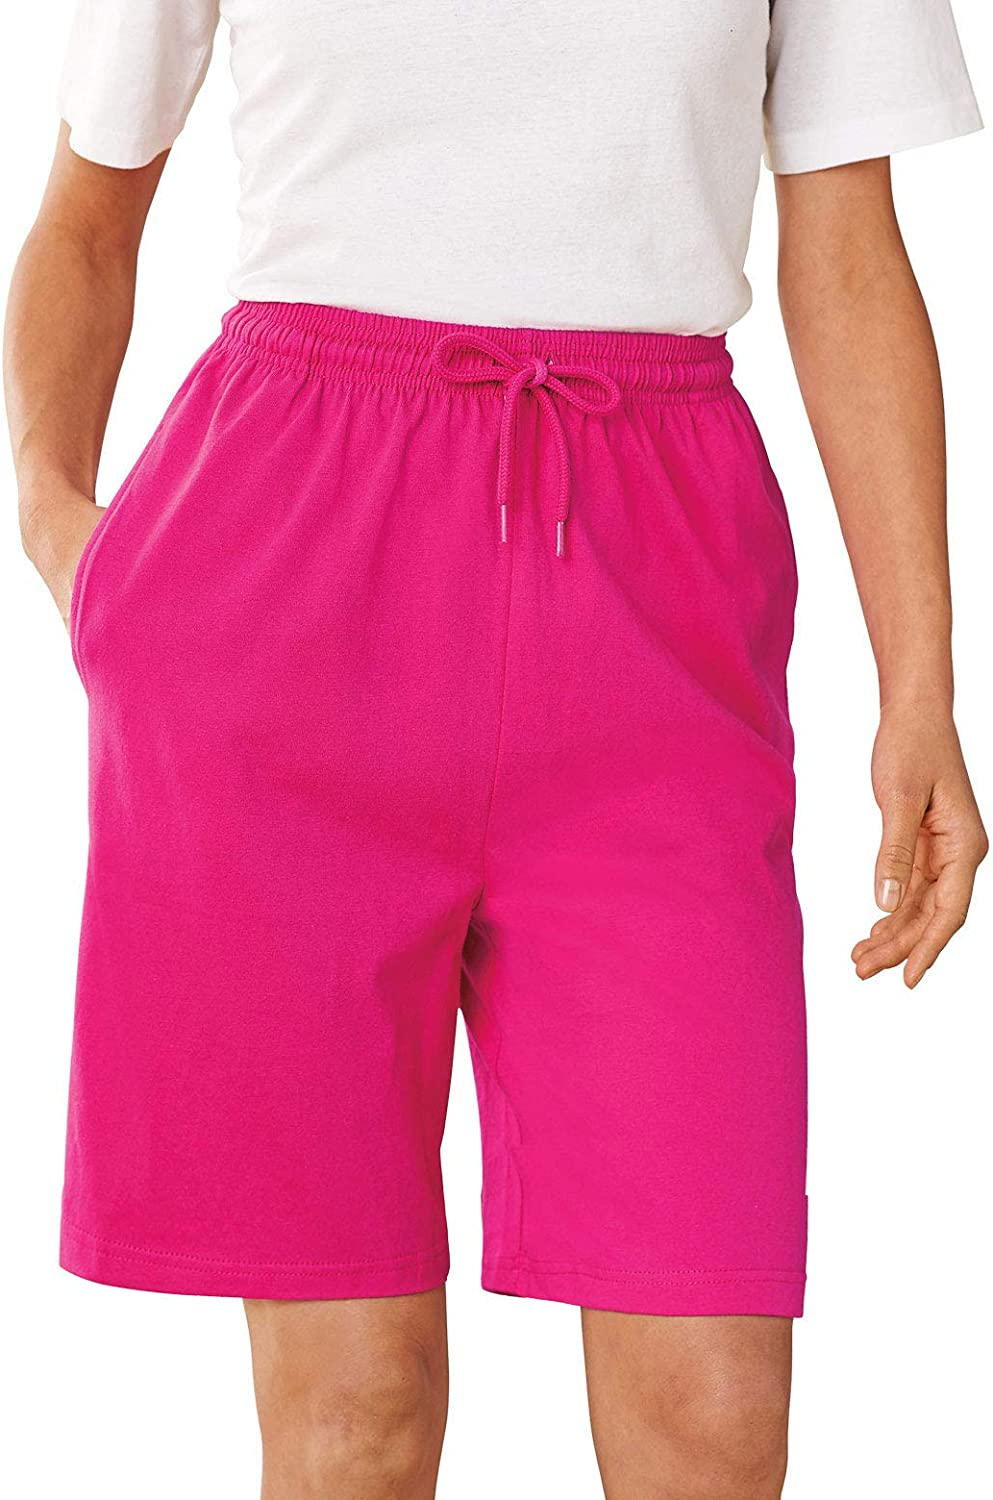 Plus Size Knit Shorts   Women?s Essential Cotton Shorts Available in Missy and Plus